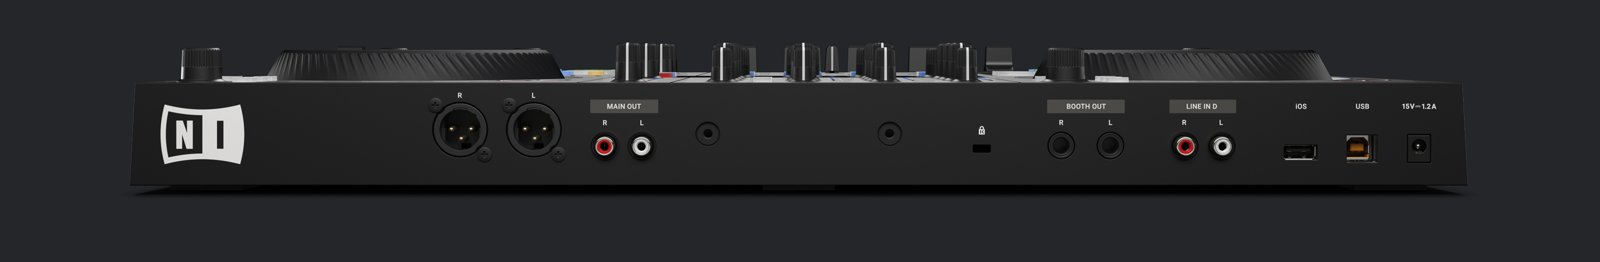 img-ce-traktor-kontorl-s3-overview-page-09-back-76d9eed368b5d5e705edc73fb9bc63ae-d